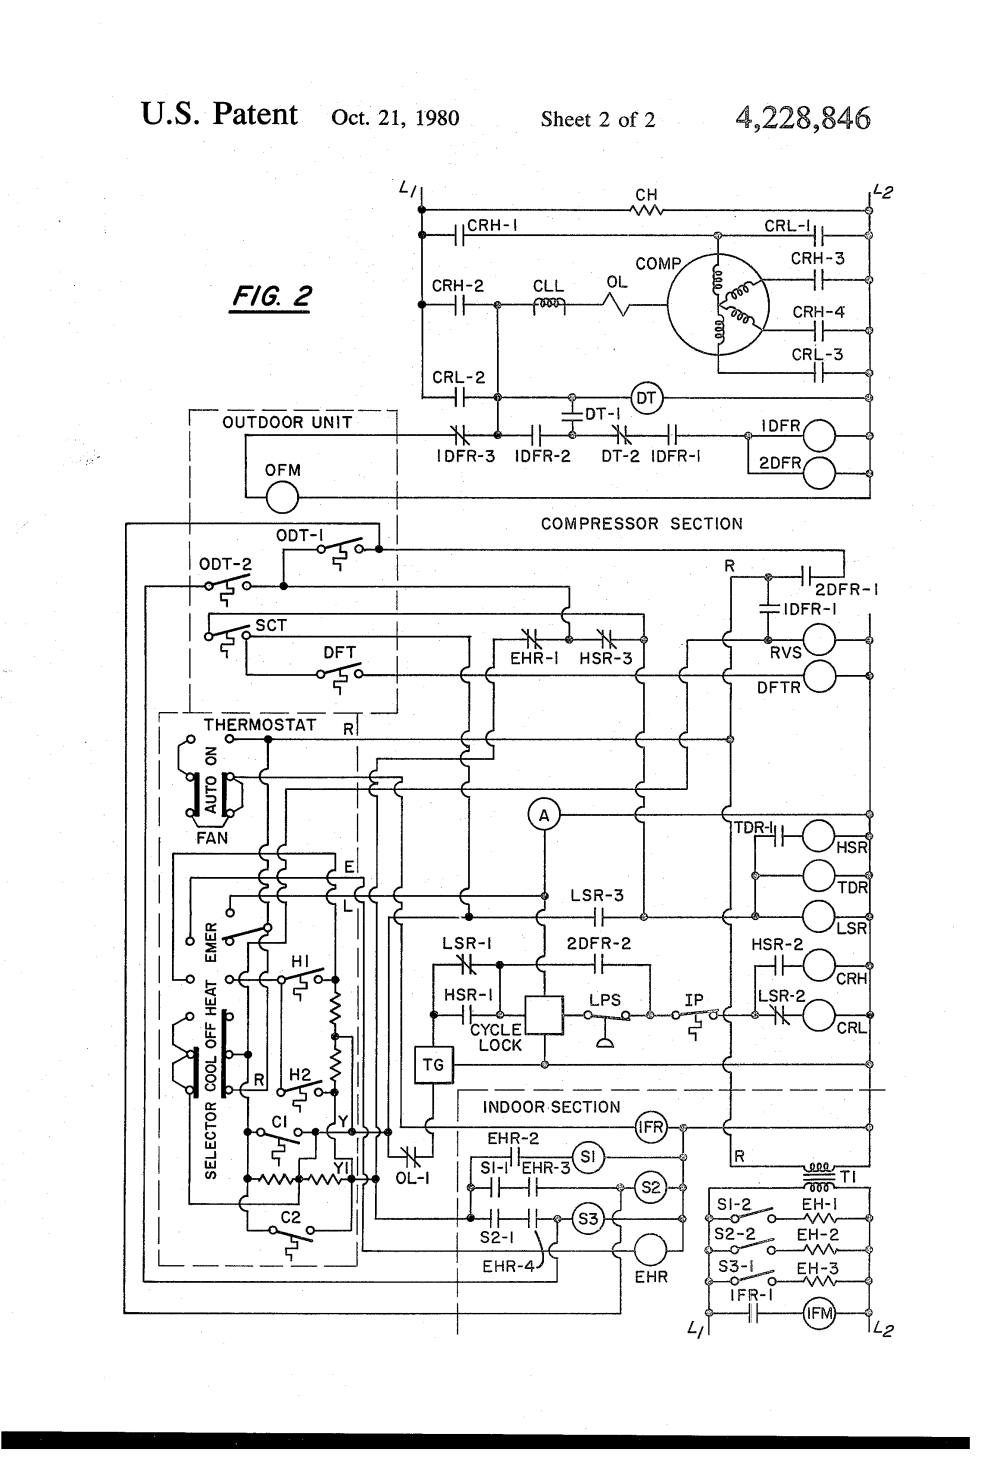 medium resolution of electrical wiring diagrams for presses automotive wiring diagrams boat instrument panel wiring diagrams dayton electric unit